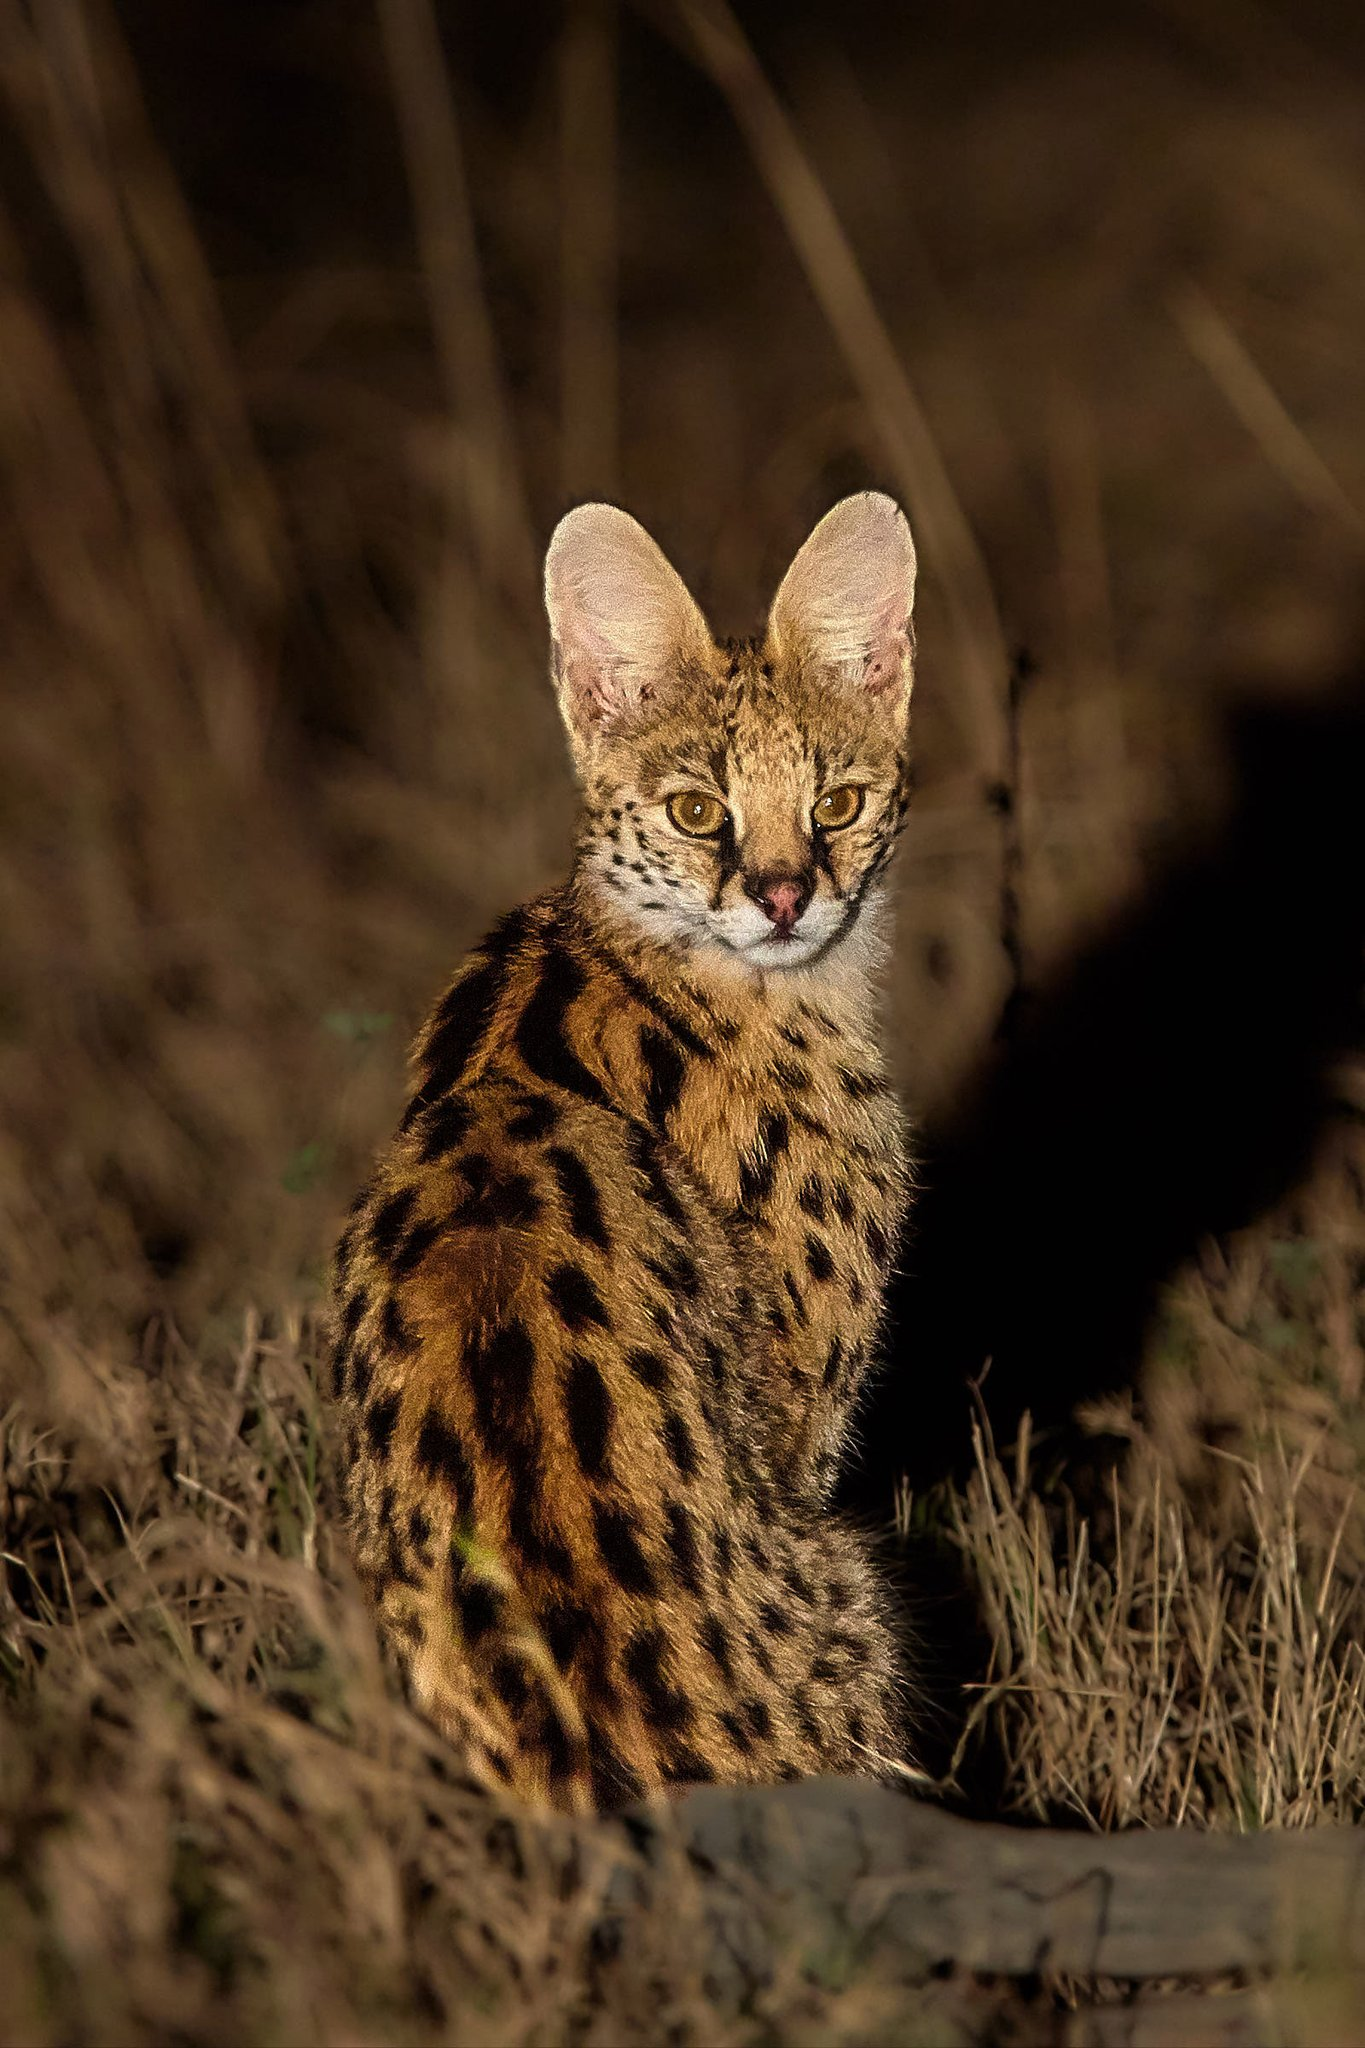 A serval keeps a weather eye (and two very large ears) out for potential dinner action at Konkamoya Lodge on the banks of Zambia's Lake Itezhi-Tezhi. 📷 Andrea Porro https://t.co/UOZp1t29H1